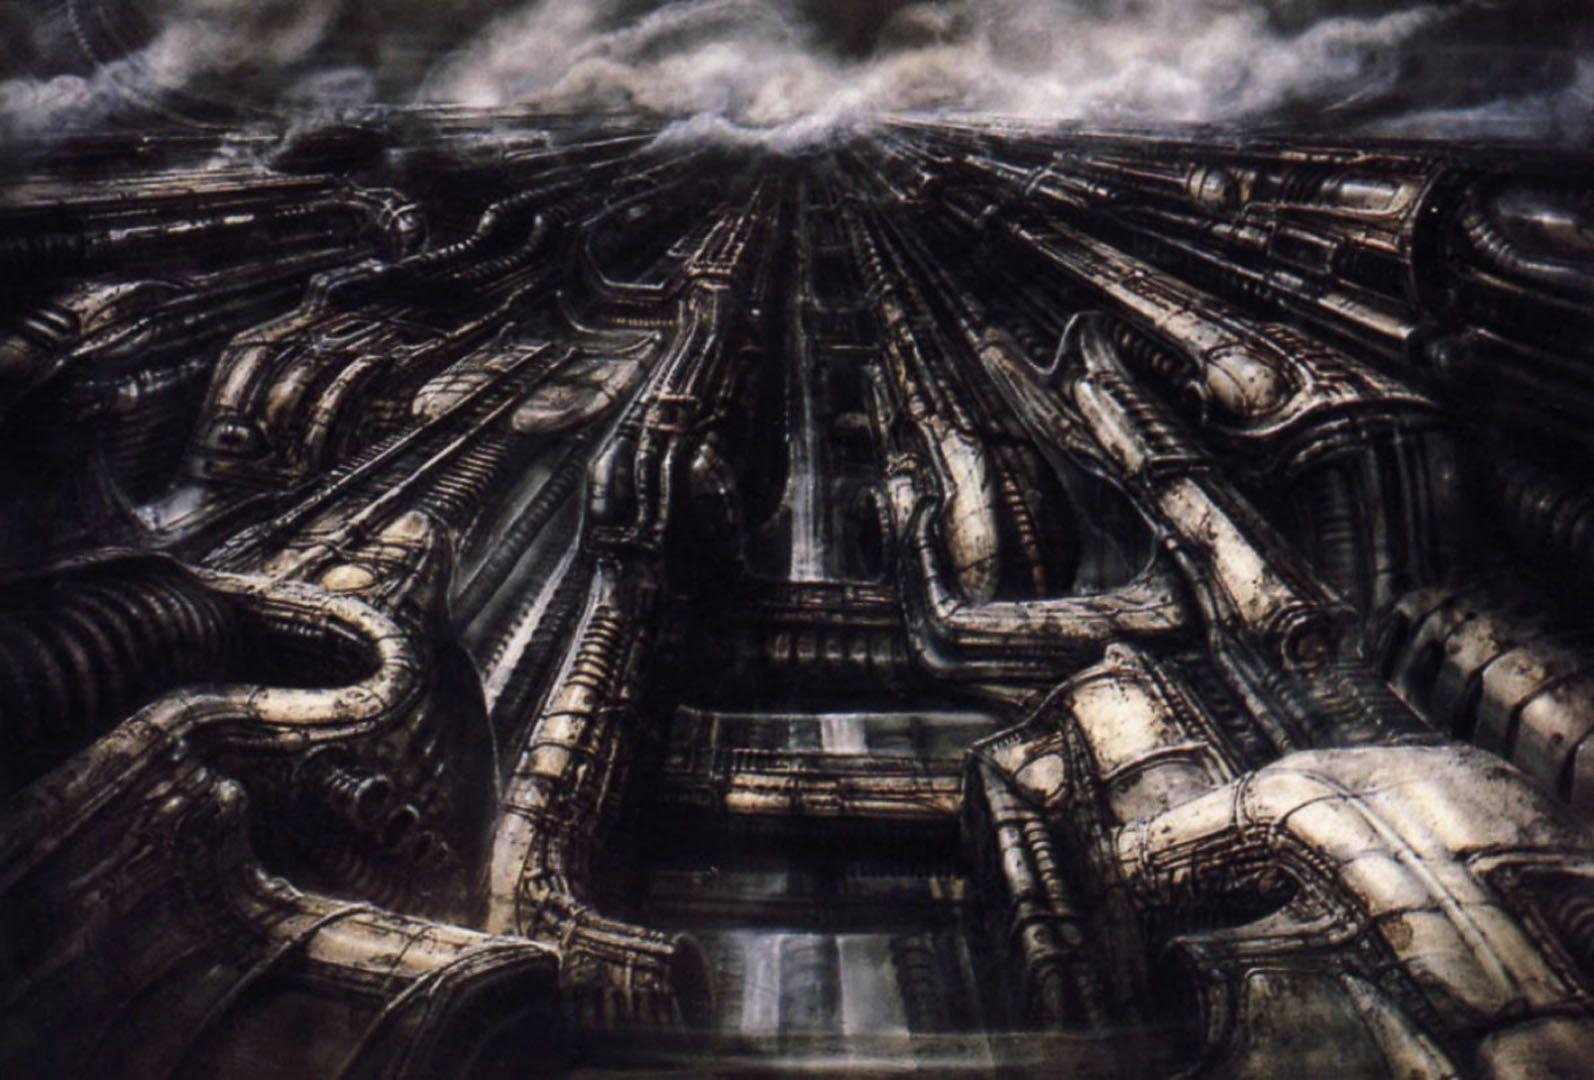 giger wallpaper hr hd - photo #2